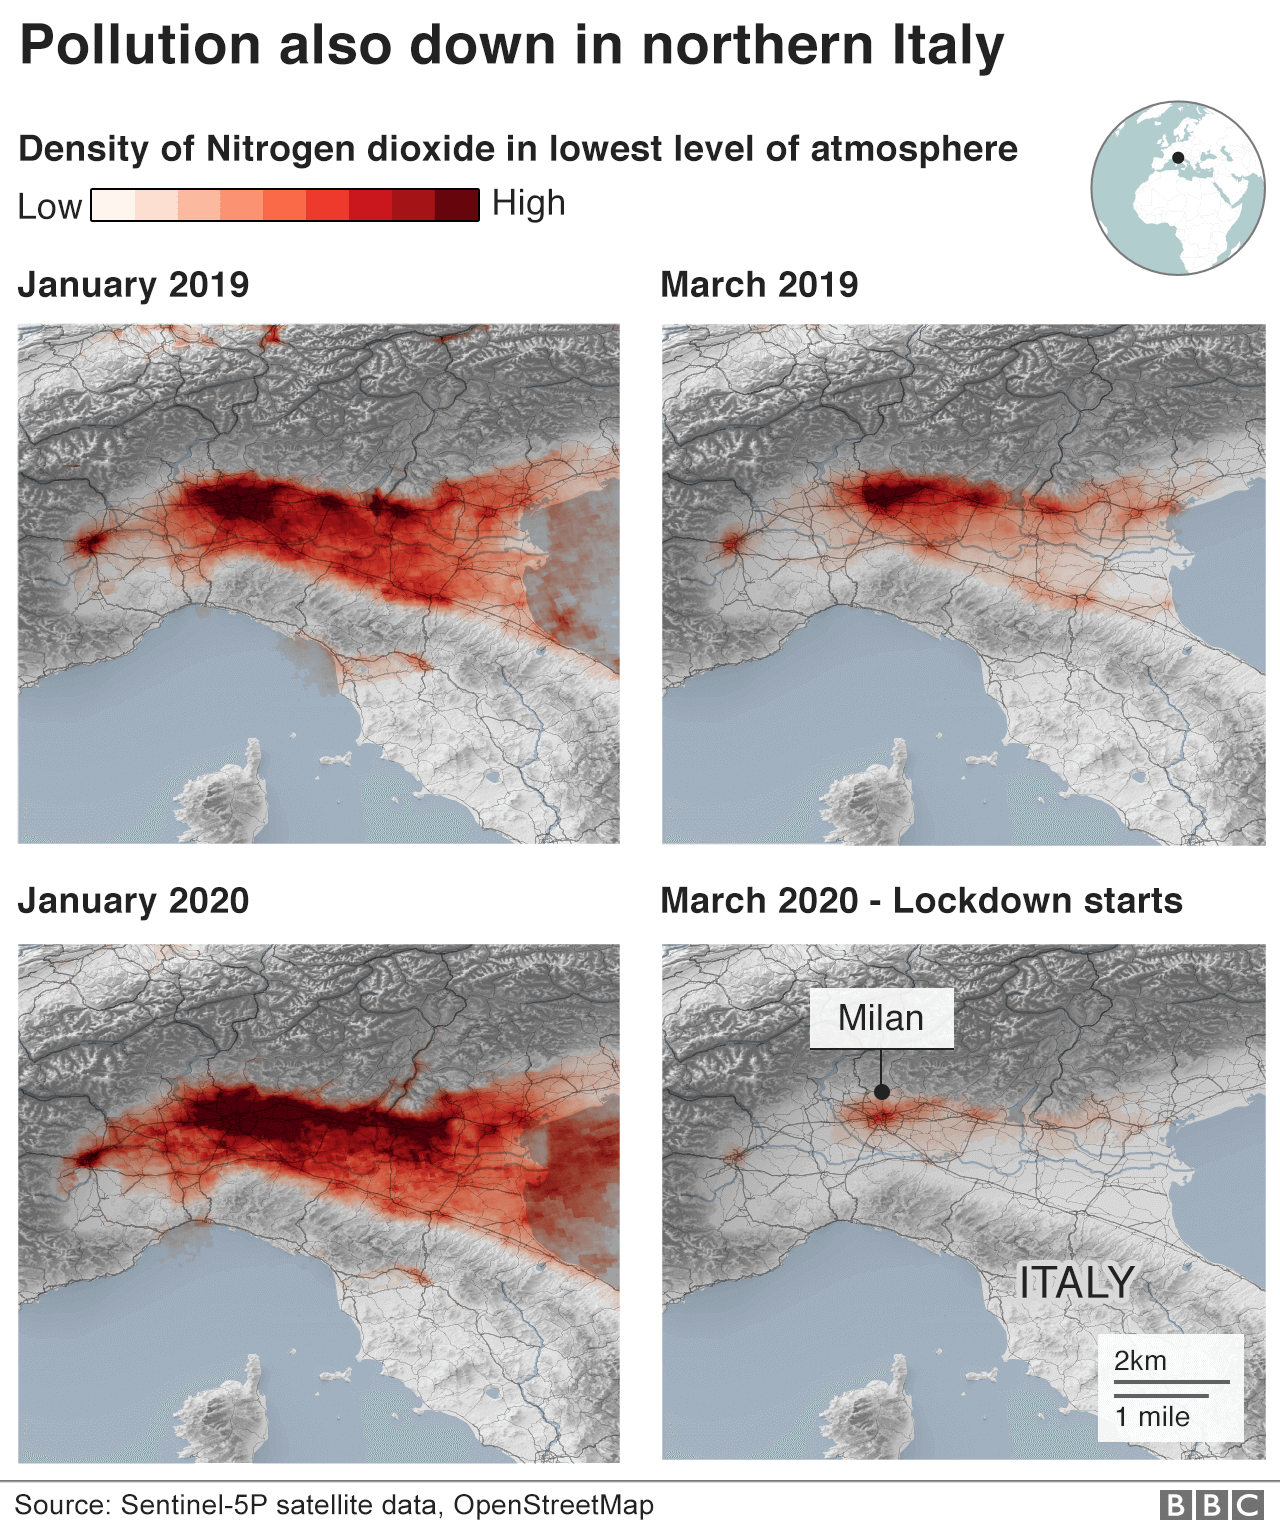 Map showing change in pollution levels in northern Italy